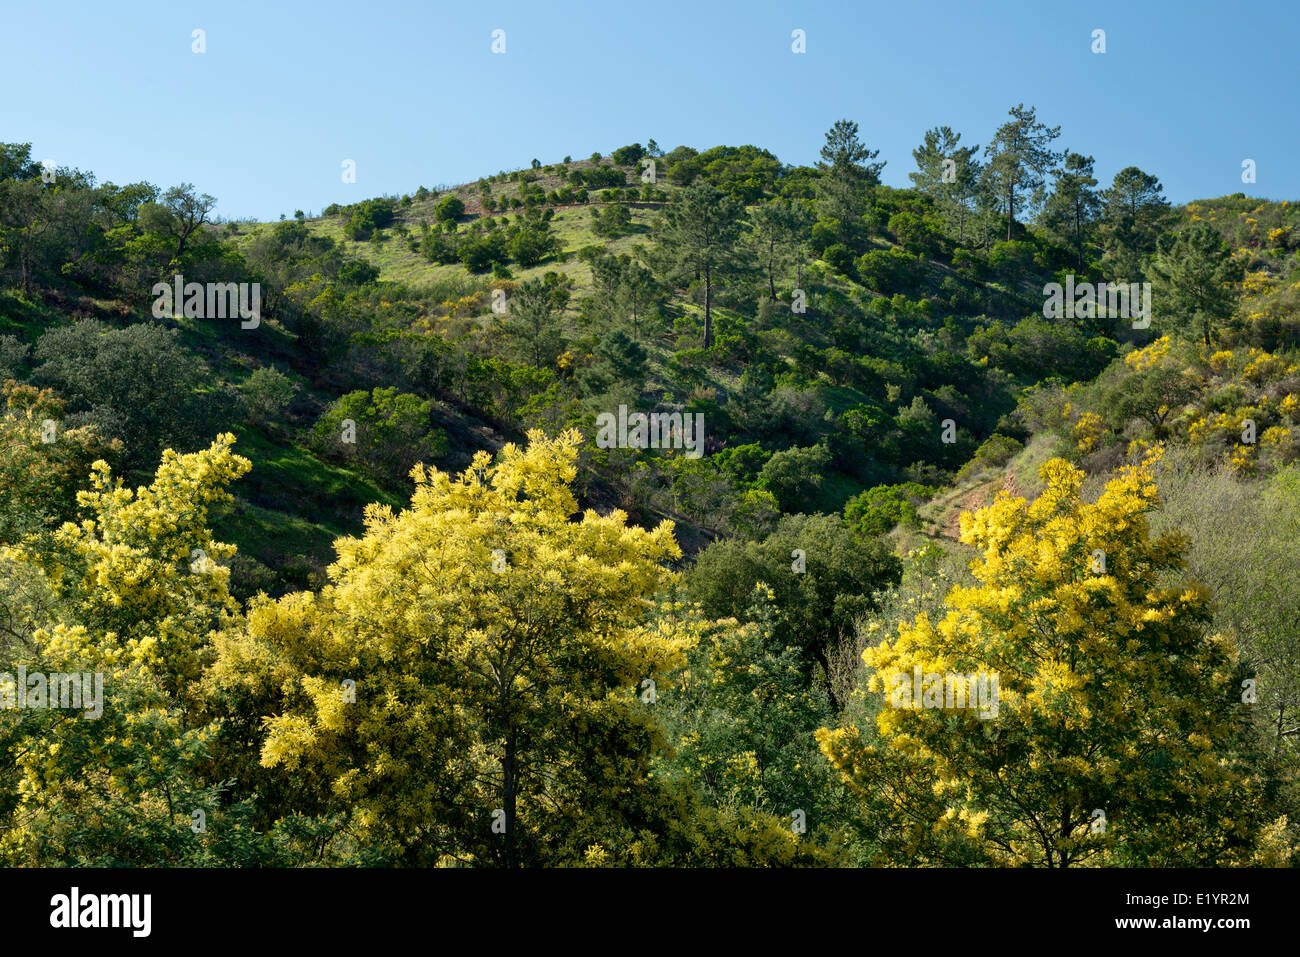 acacia mimosa trees in flower, Monchique, Algarve, Portugal - Stock Image